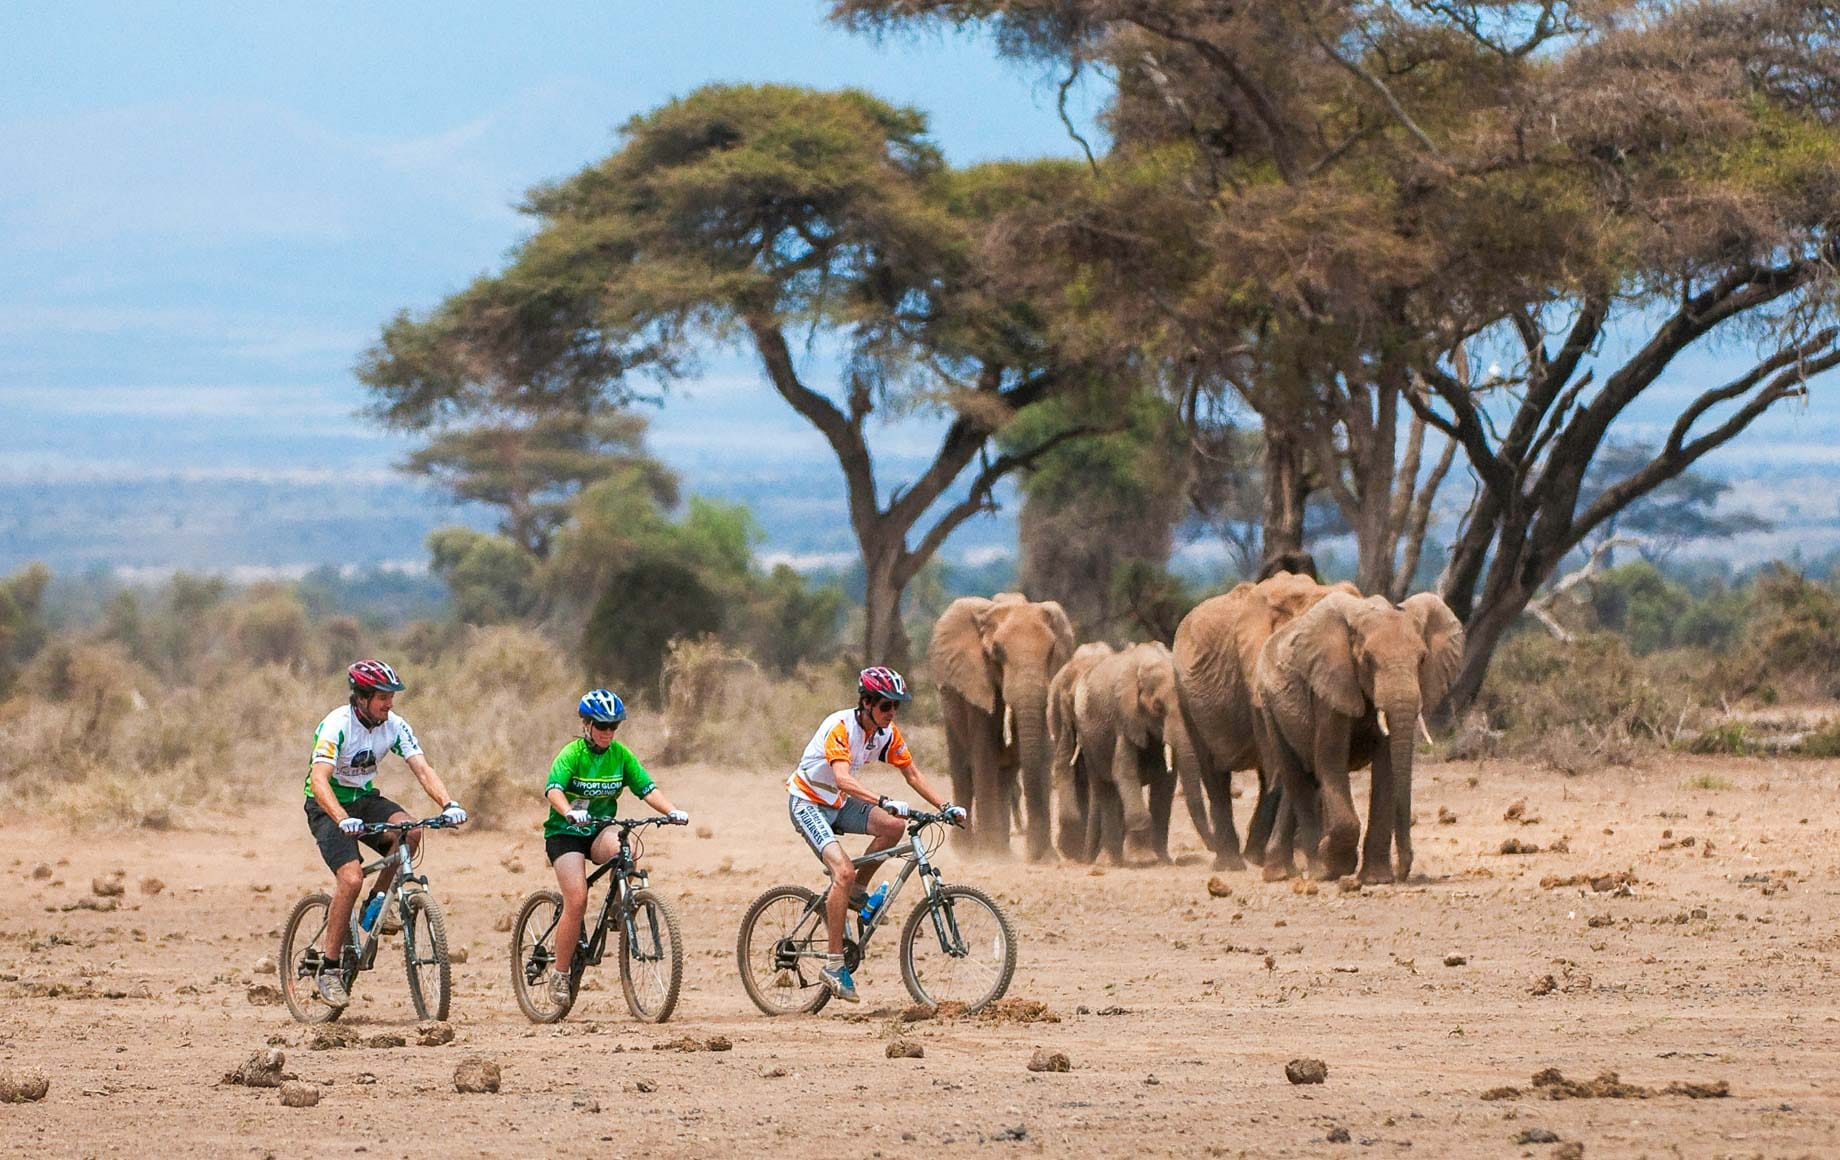 Riding bicycles alongside family of elephants at Chyulu Hills